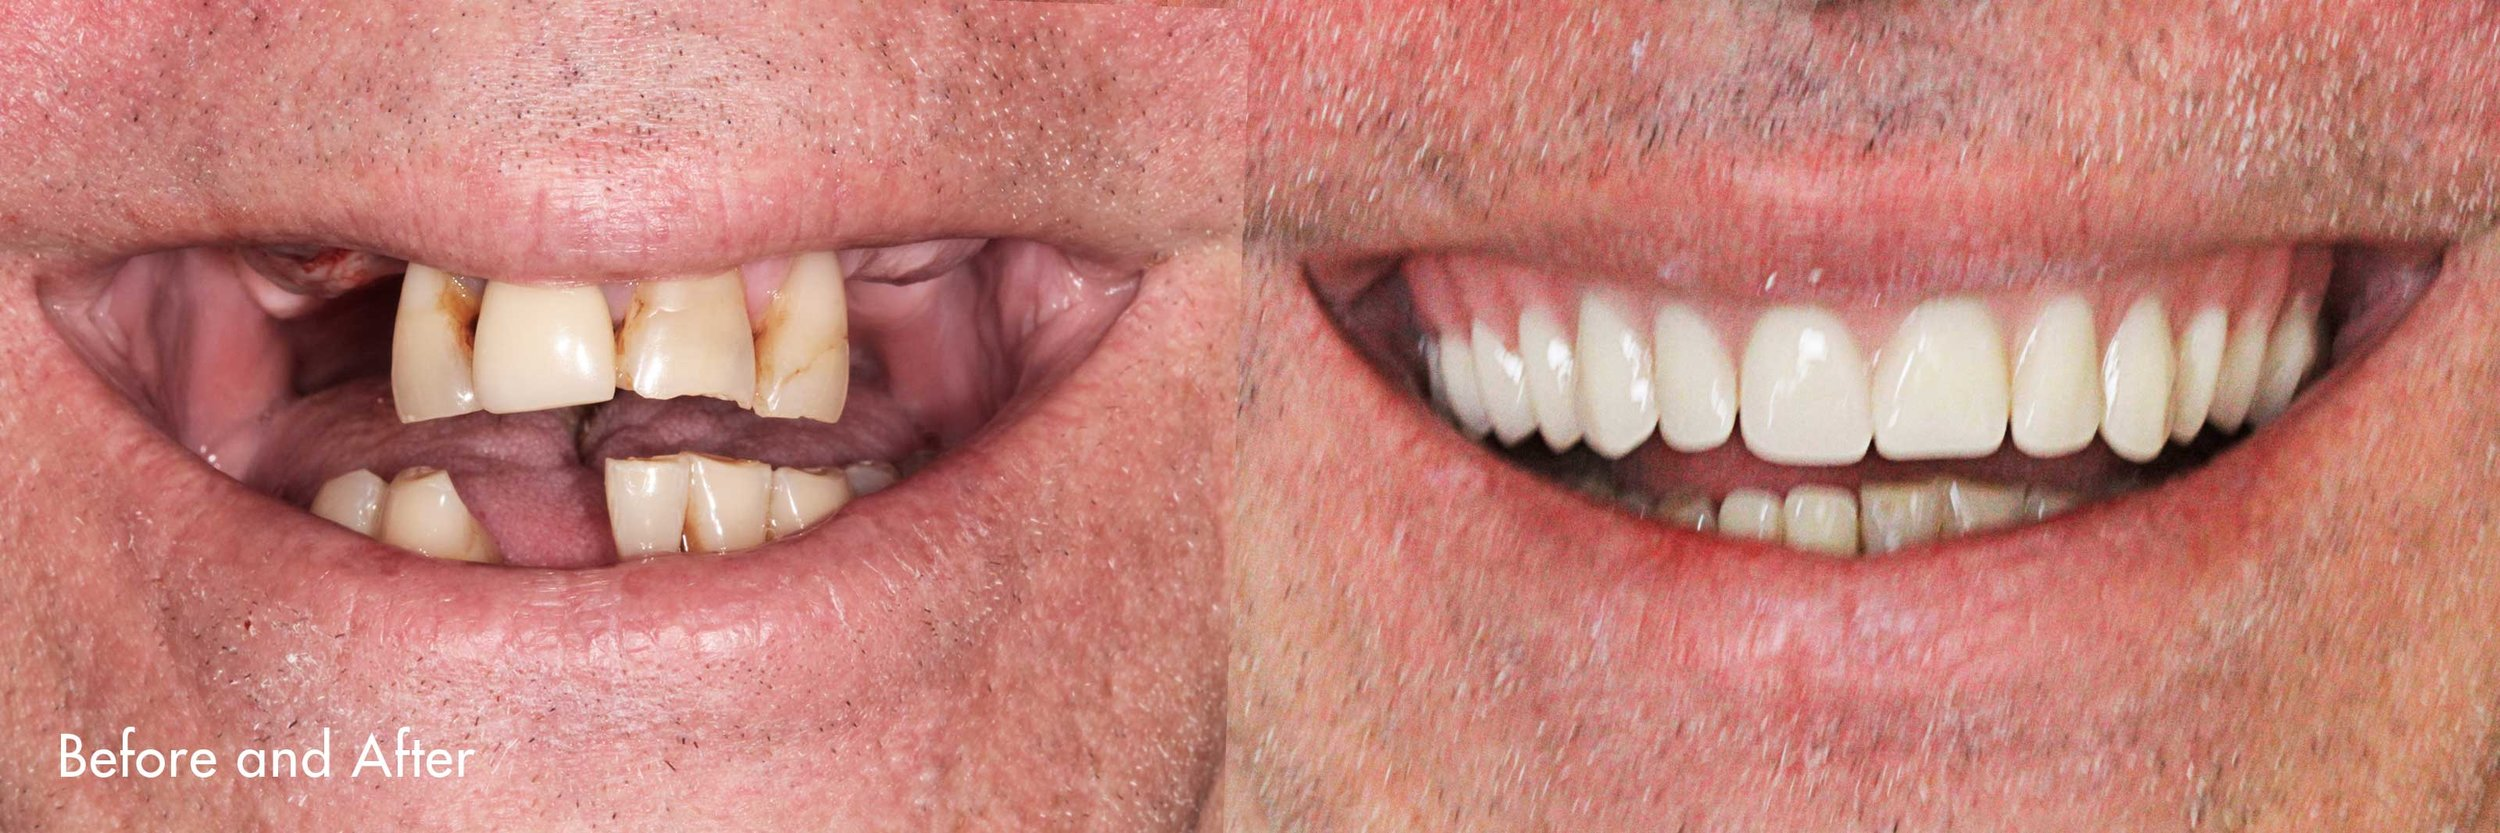 We have a denture lab on site. As a result, dentures for our patients can be constructed and prepared quickly.